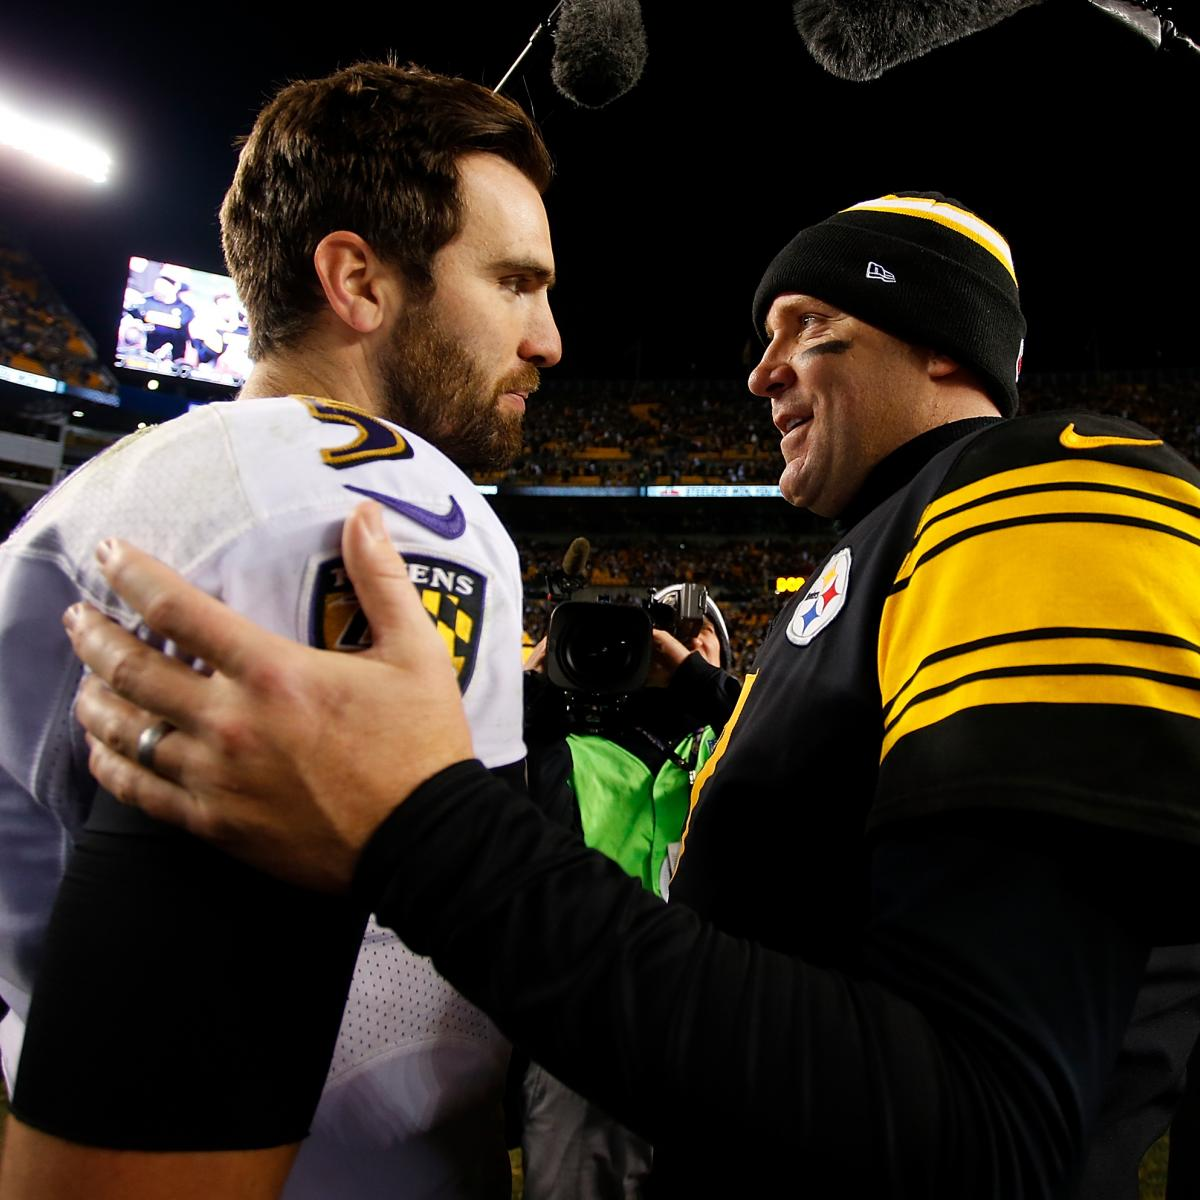 Ben Roethlisberger: Bengals-Steelers Doesn't Have Same Respect as Ravens Rivalry